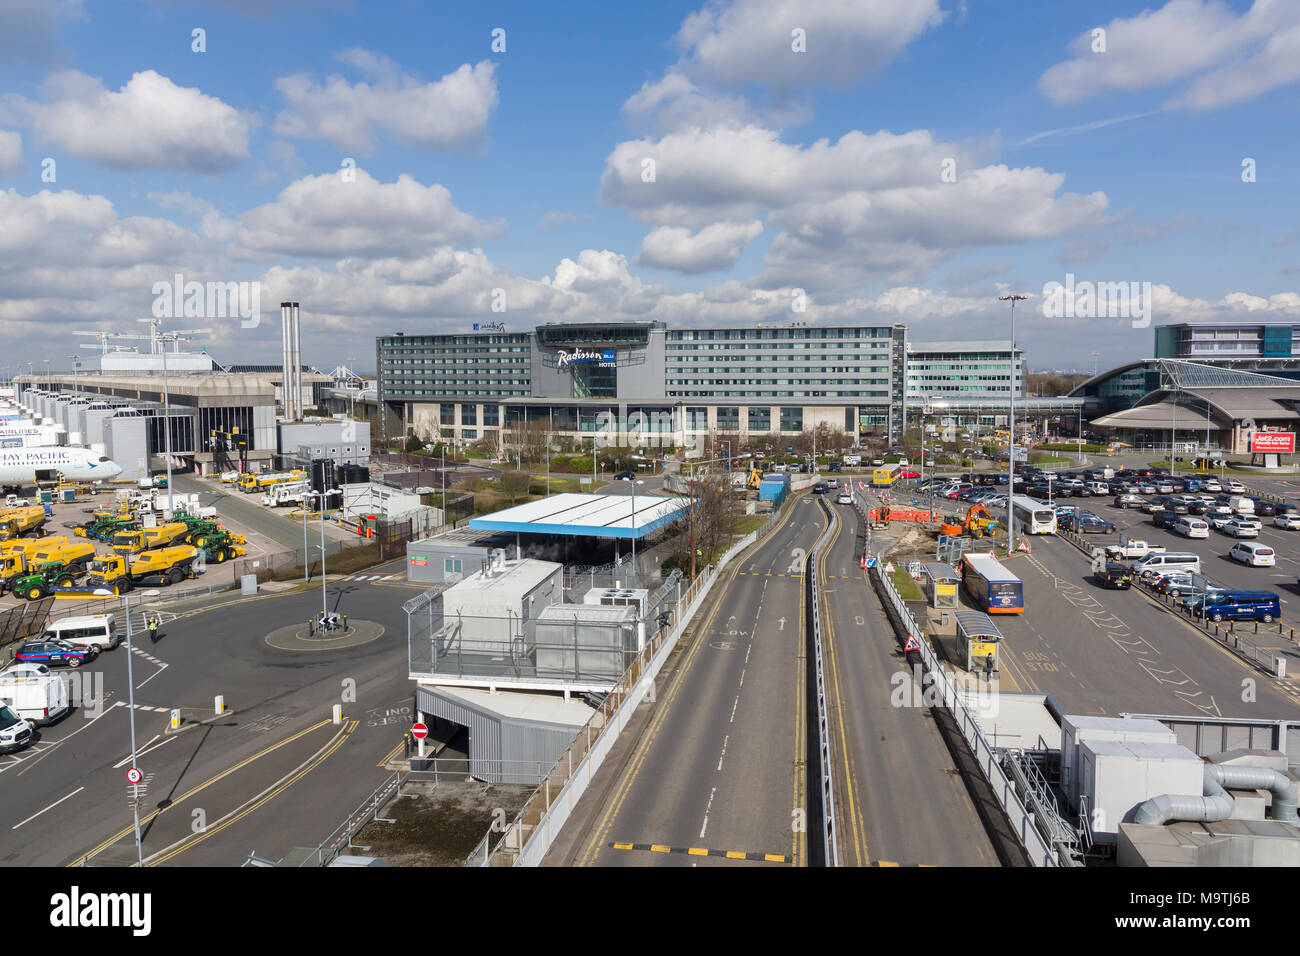 Terminal manchester airport england holiday stock photos terminal radisson blu one of 287 hotels operated by the carlson rezidor hotel group this one is kristyandbryce Image collections